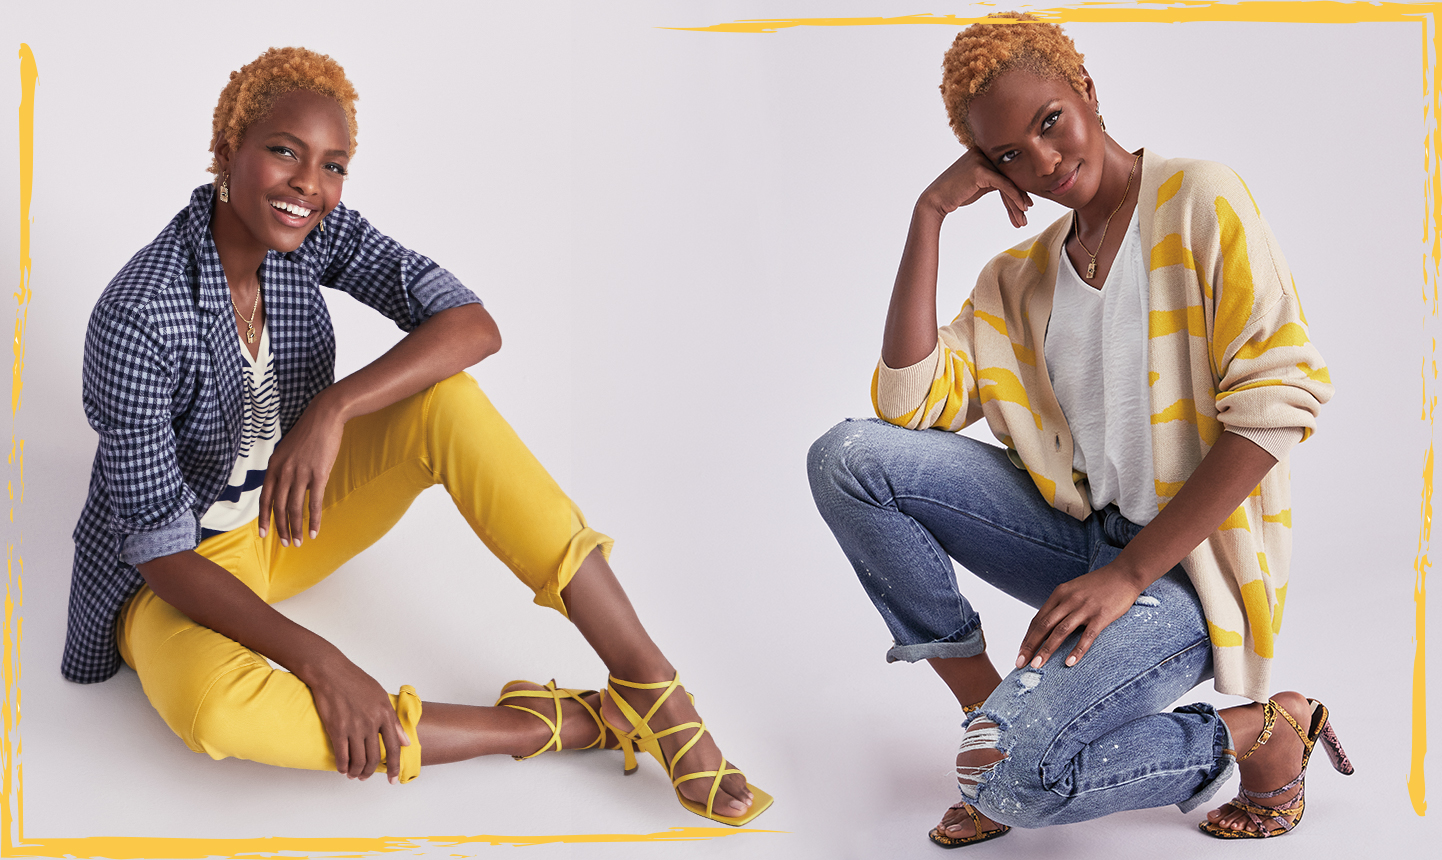 fashion flash: the hottest new looks - Cabi Spring 6 Collection